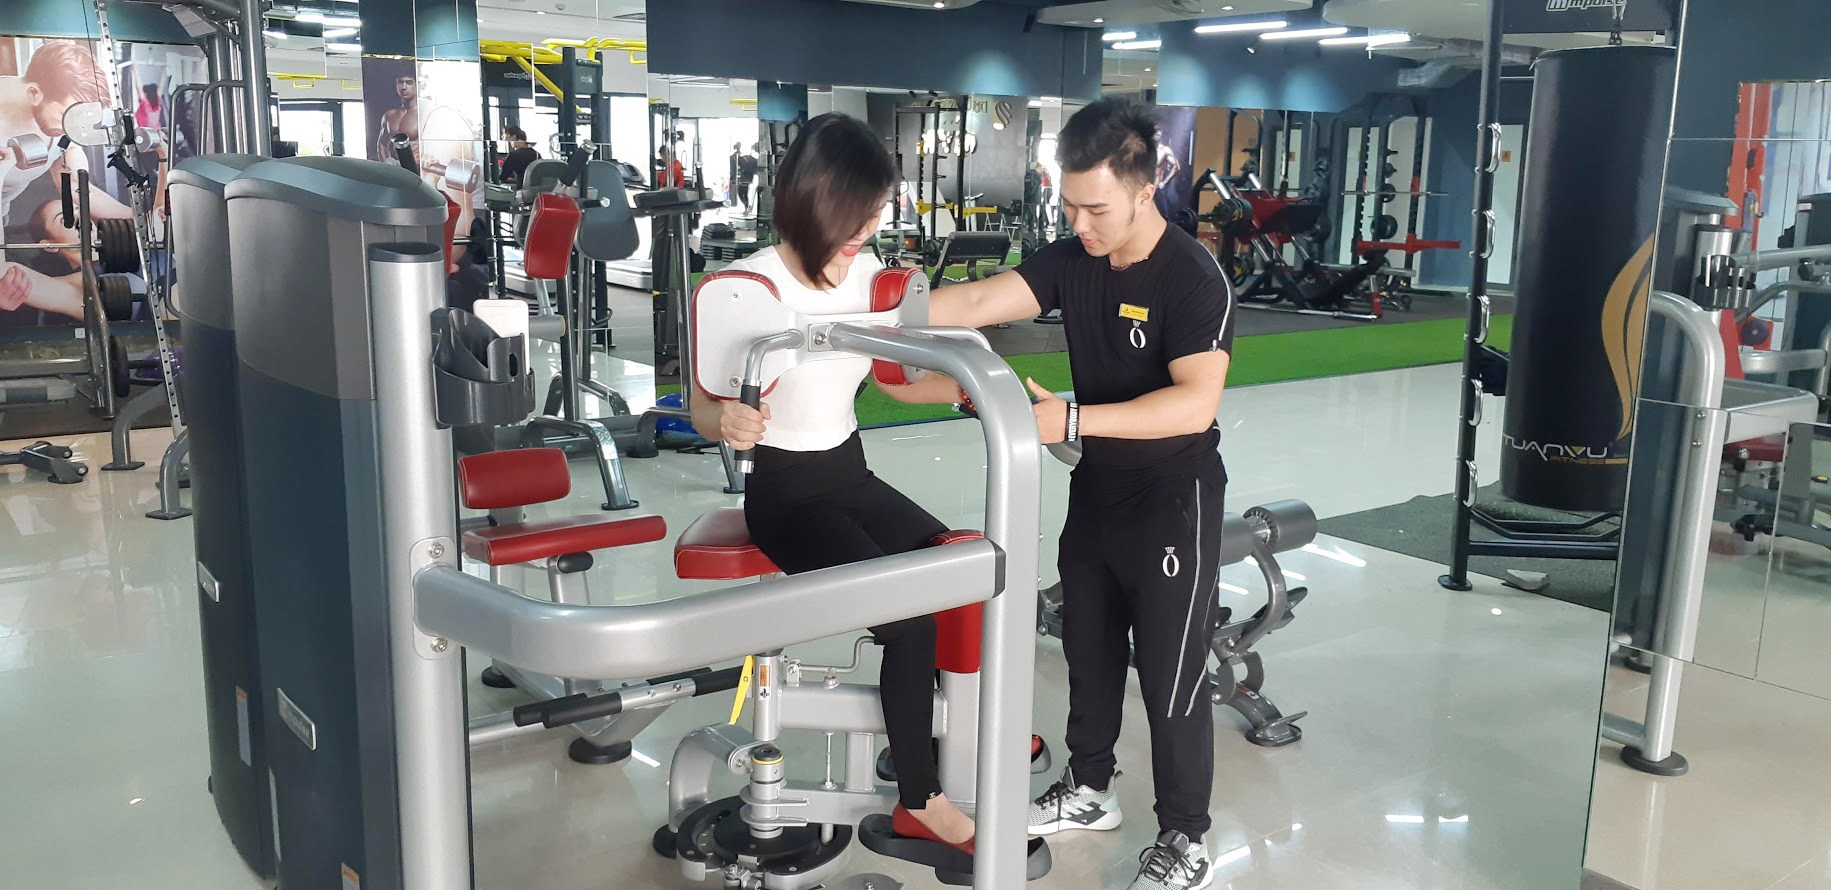 DUC HUY GRAND FITNESS